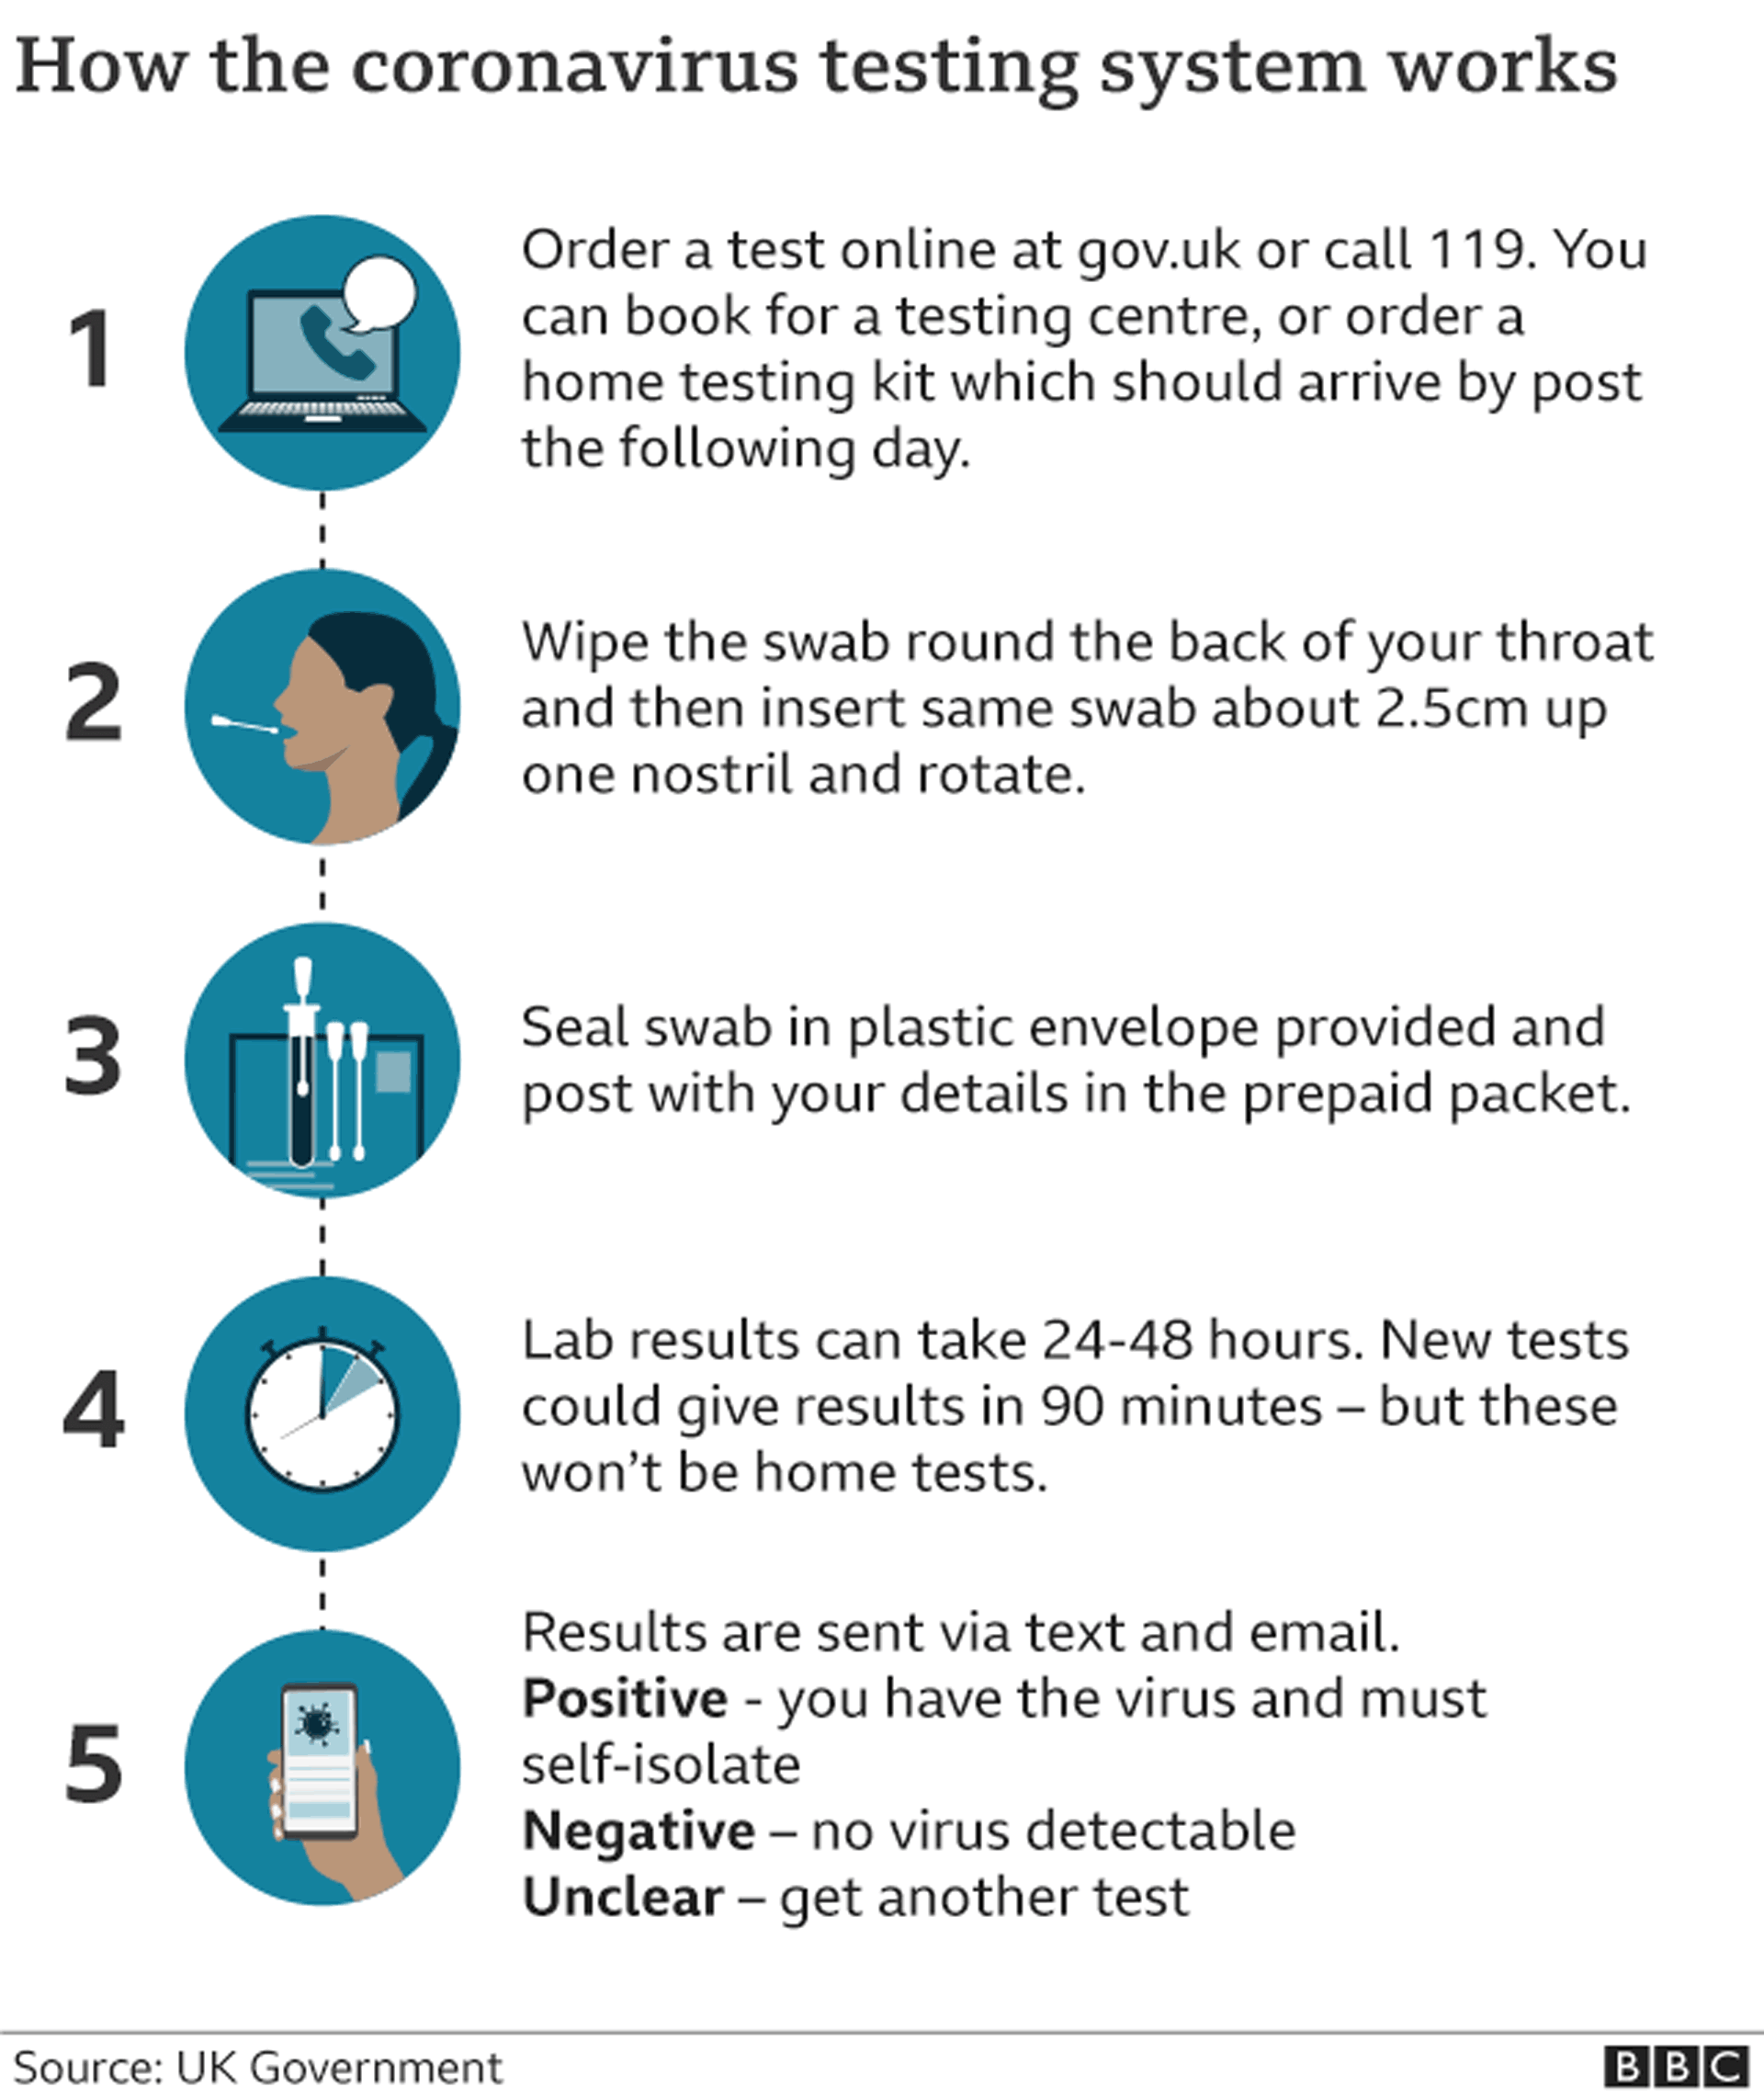 how the coronavirus testing system works: order a test either to your home or go to a testing centre, take a swab of the back of your throat and up your nose, if it's a home test seal it up and send it back, postage paid. lab results can take between 24 and 48 hours. results are sent via text and email